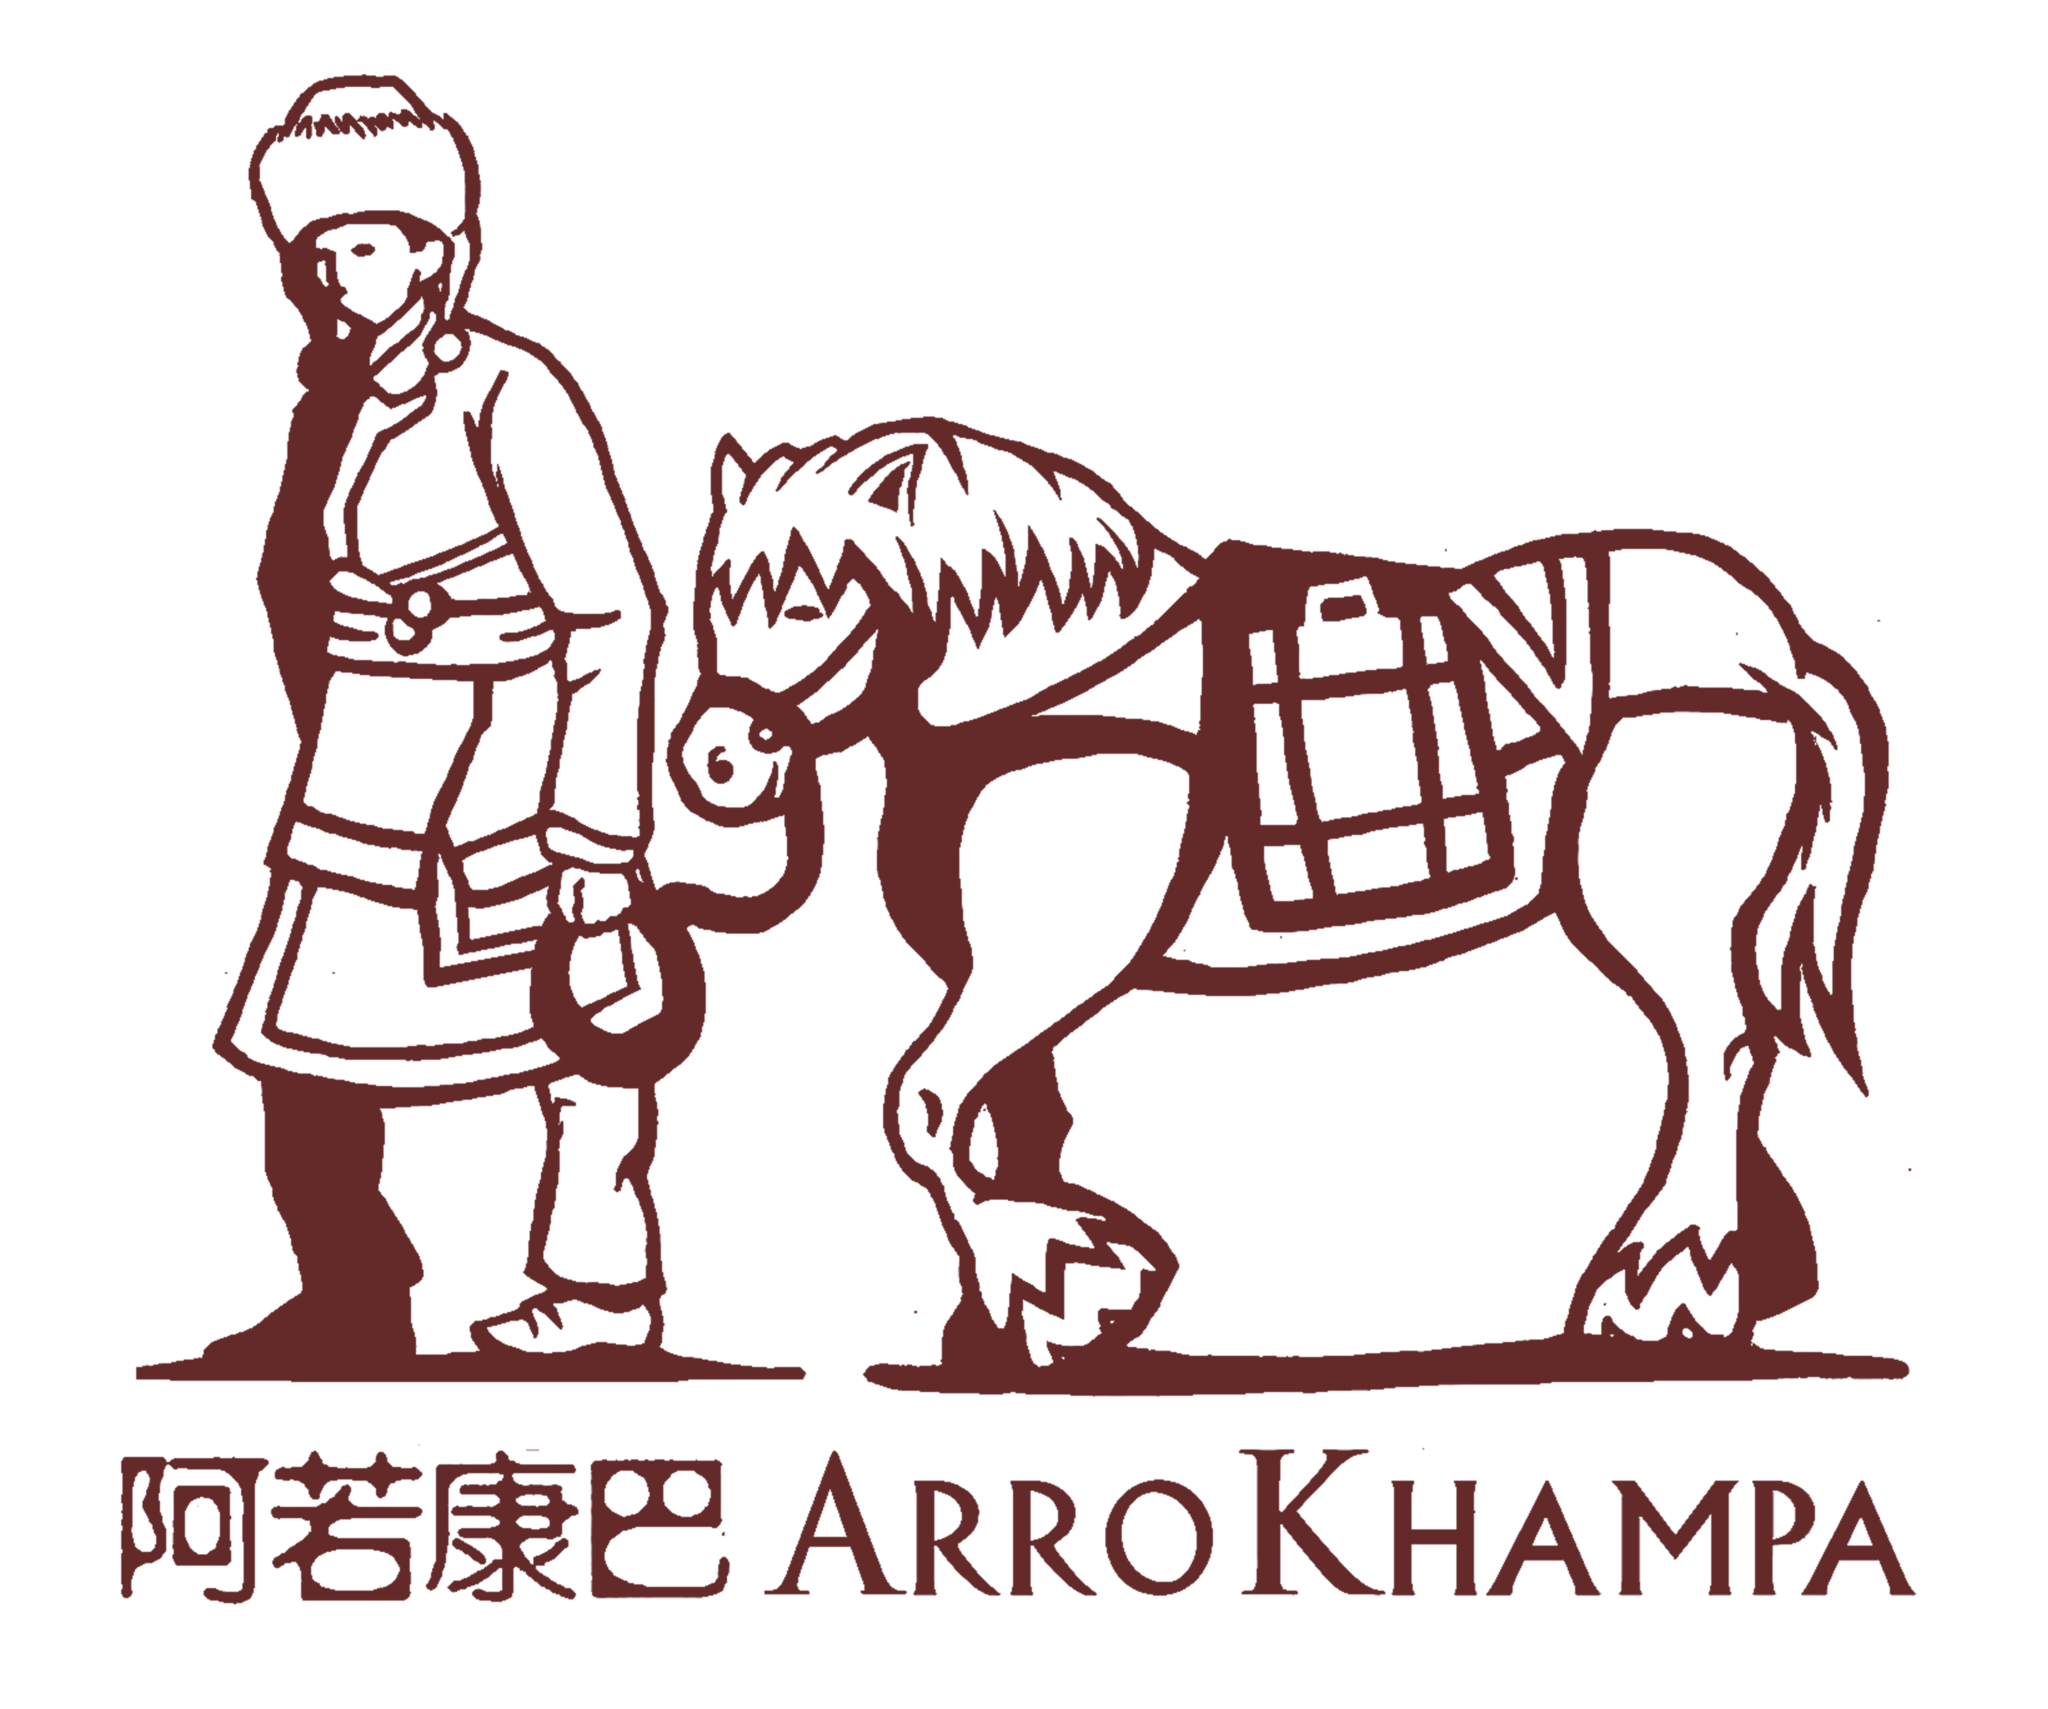 Arro Khampa by Zinc Journey Shangri-la